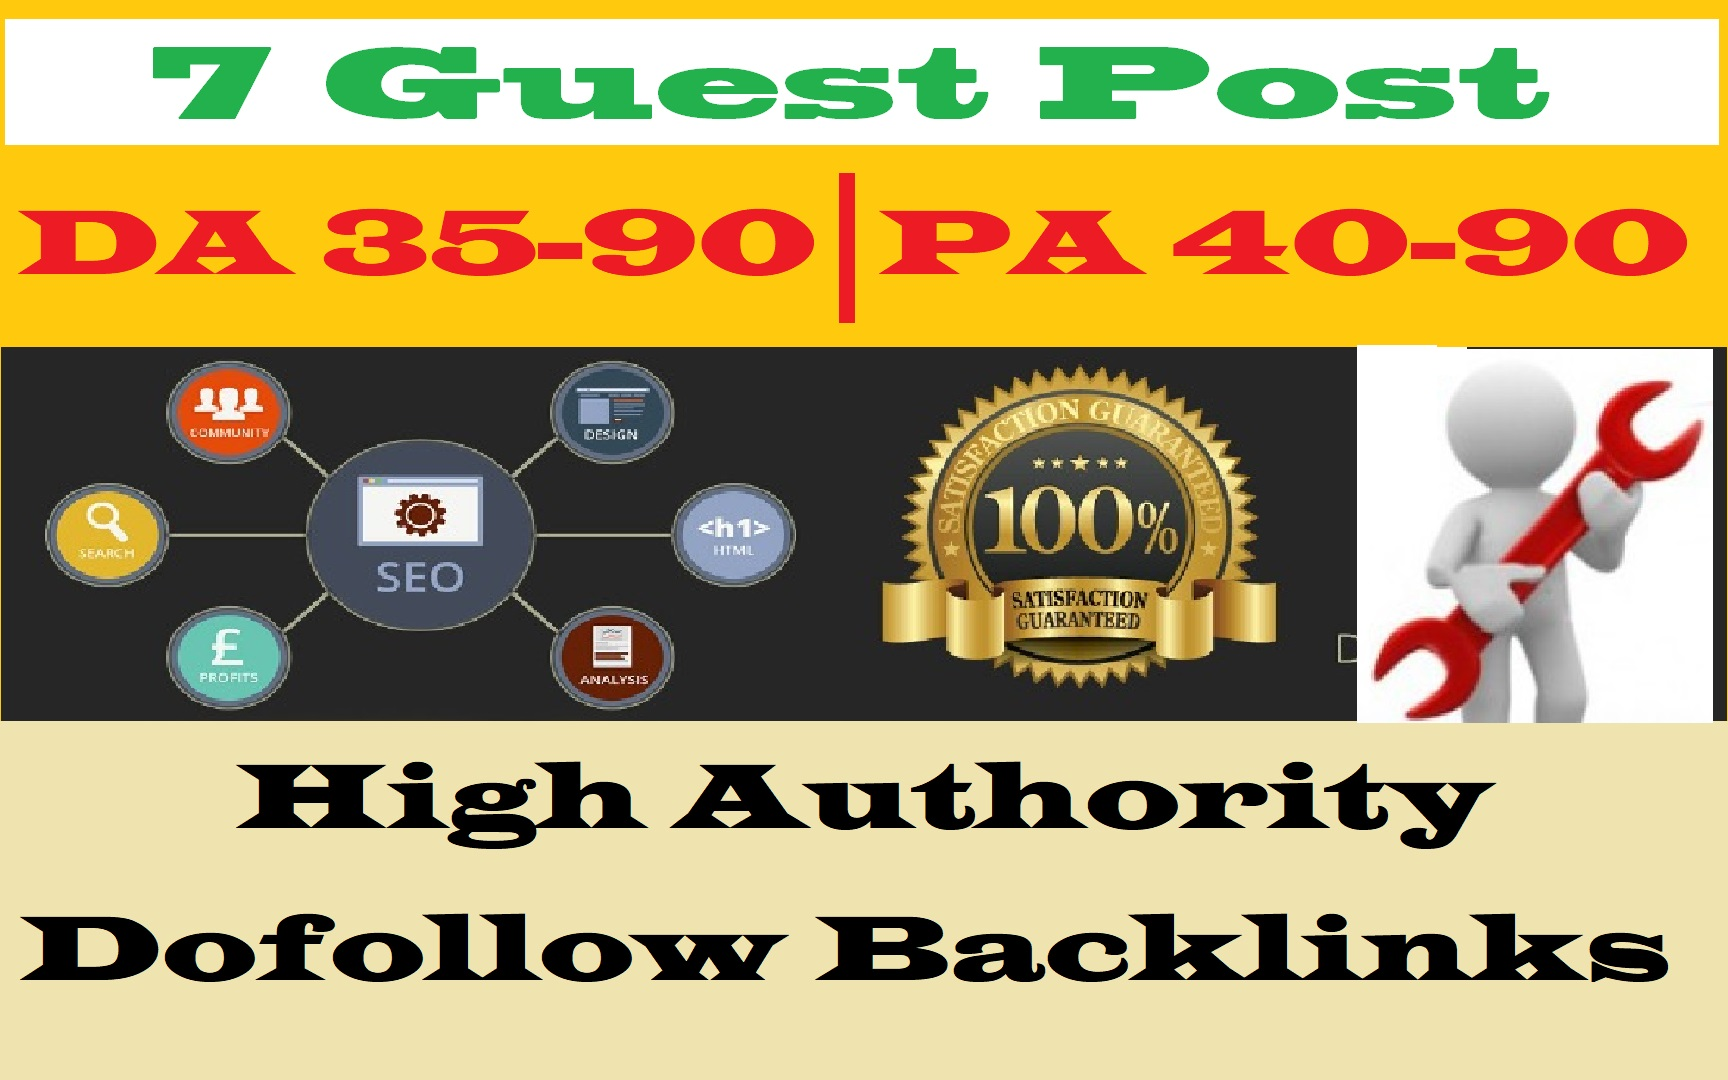 Free Offer - Write and Publish 7 Dofollow Guest Post DA 35-90 High Backlink